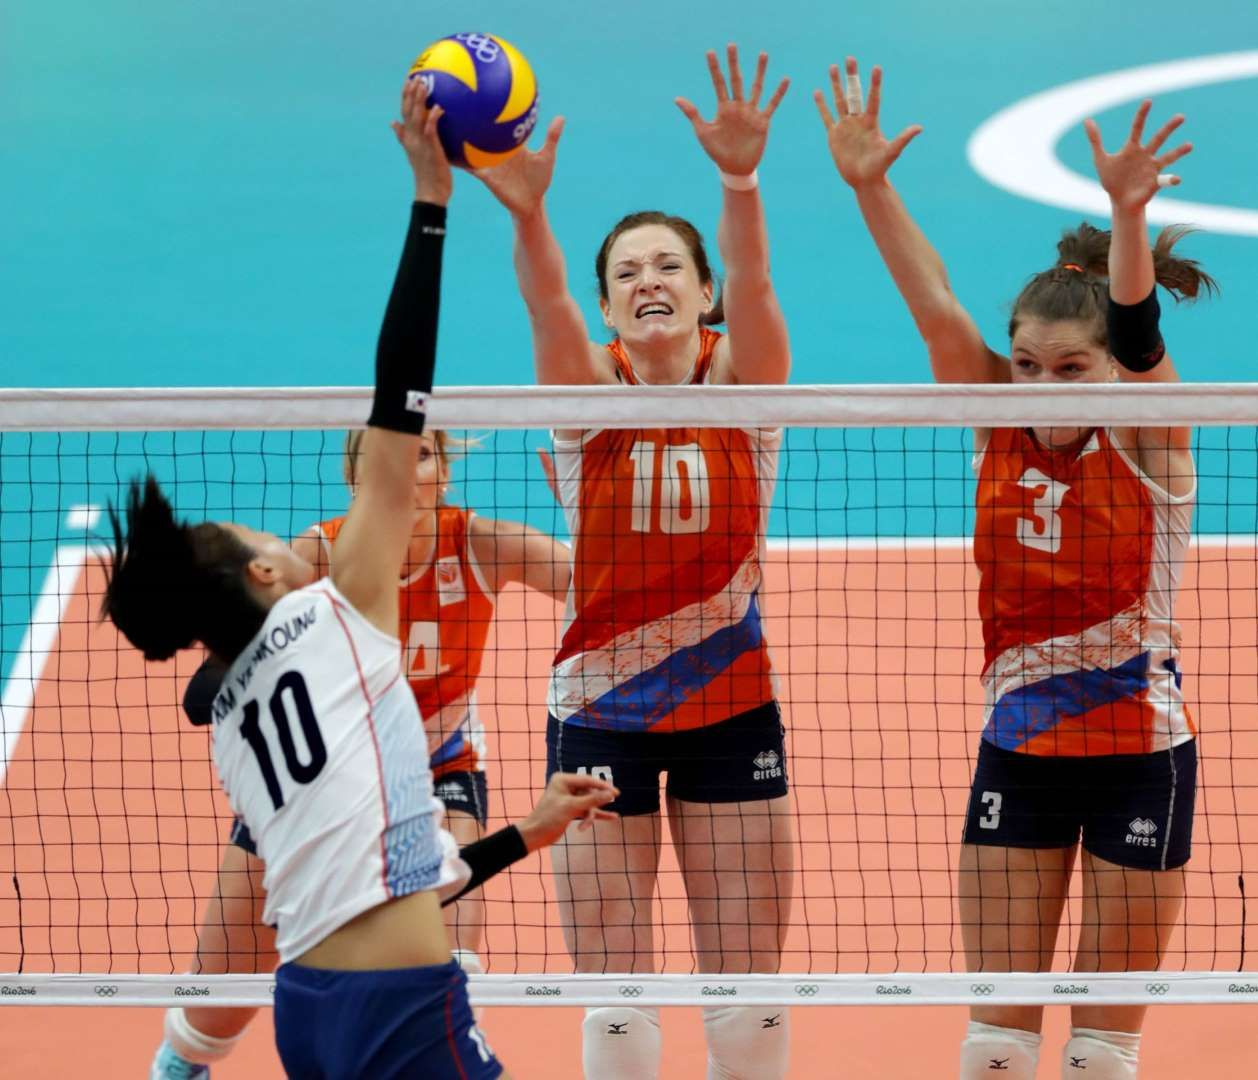 Yeon Koung Kim Of South Korea Spikes The Ball As Netherlands Attempts To Block During A Women S Volleyball Match Bet Rio Olympics Summer Olympic Games Olympics